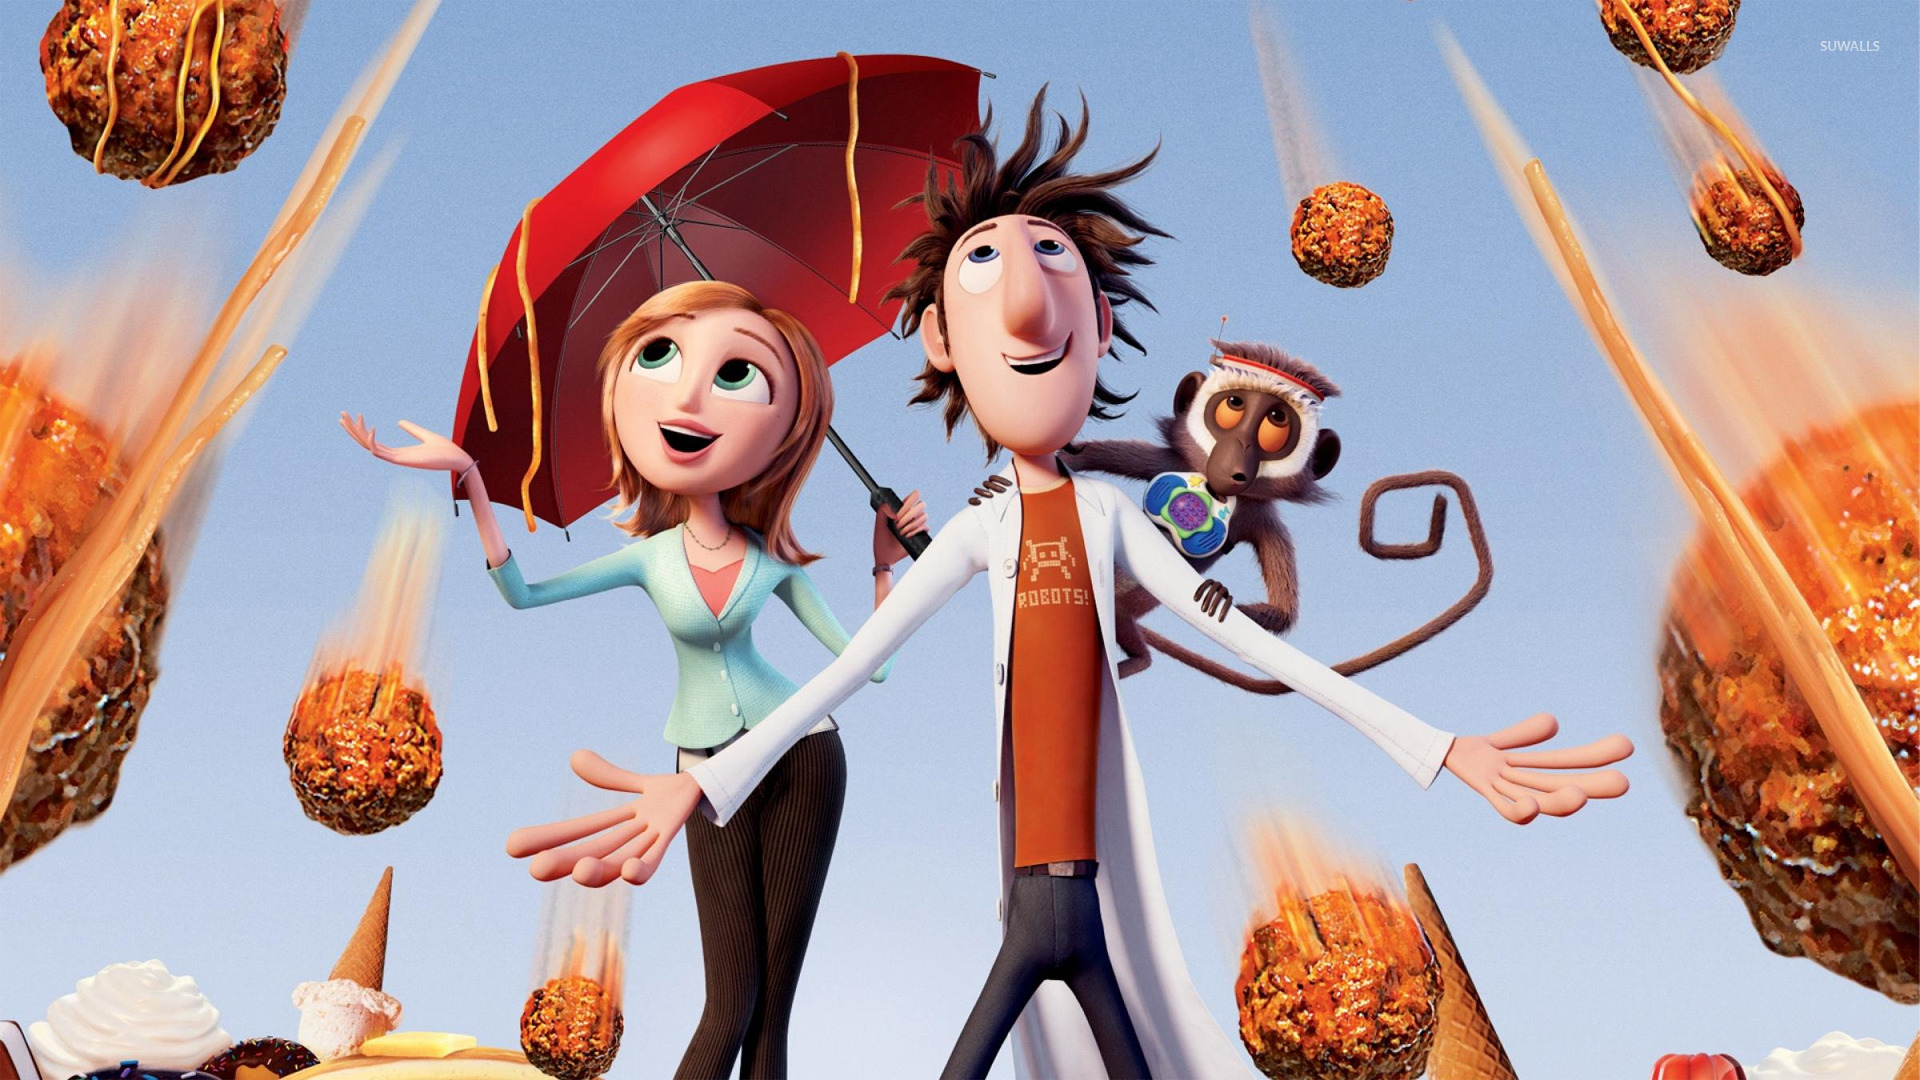 cloudy with a chance of meatballs 2 [3] wallpaper - cartoon